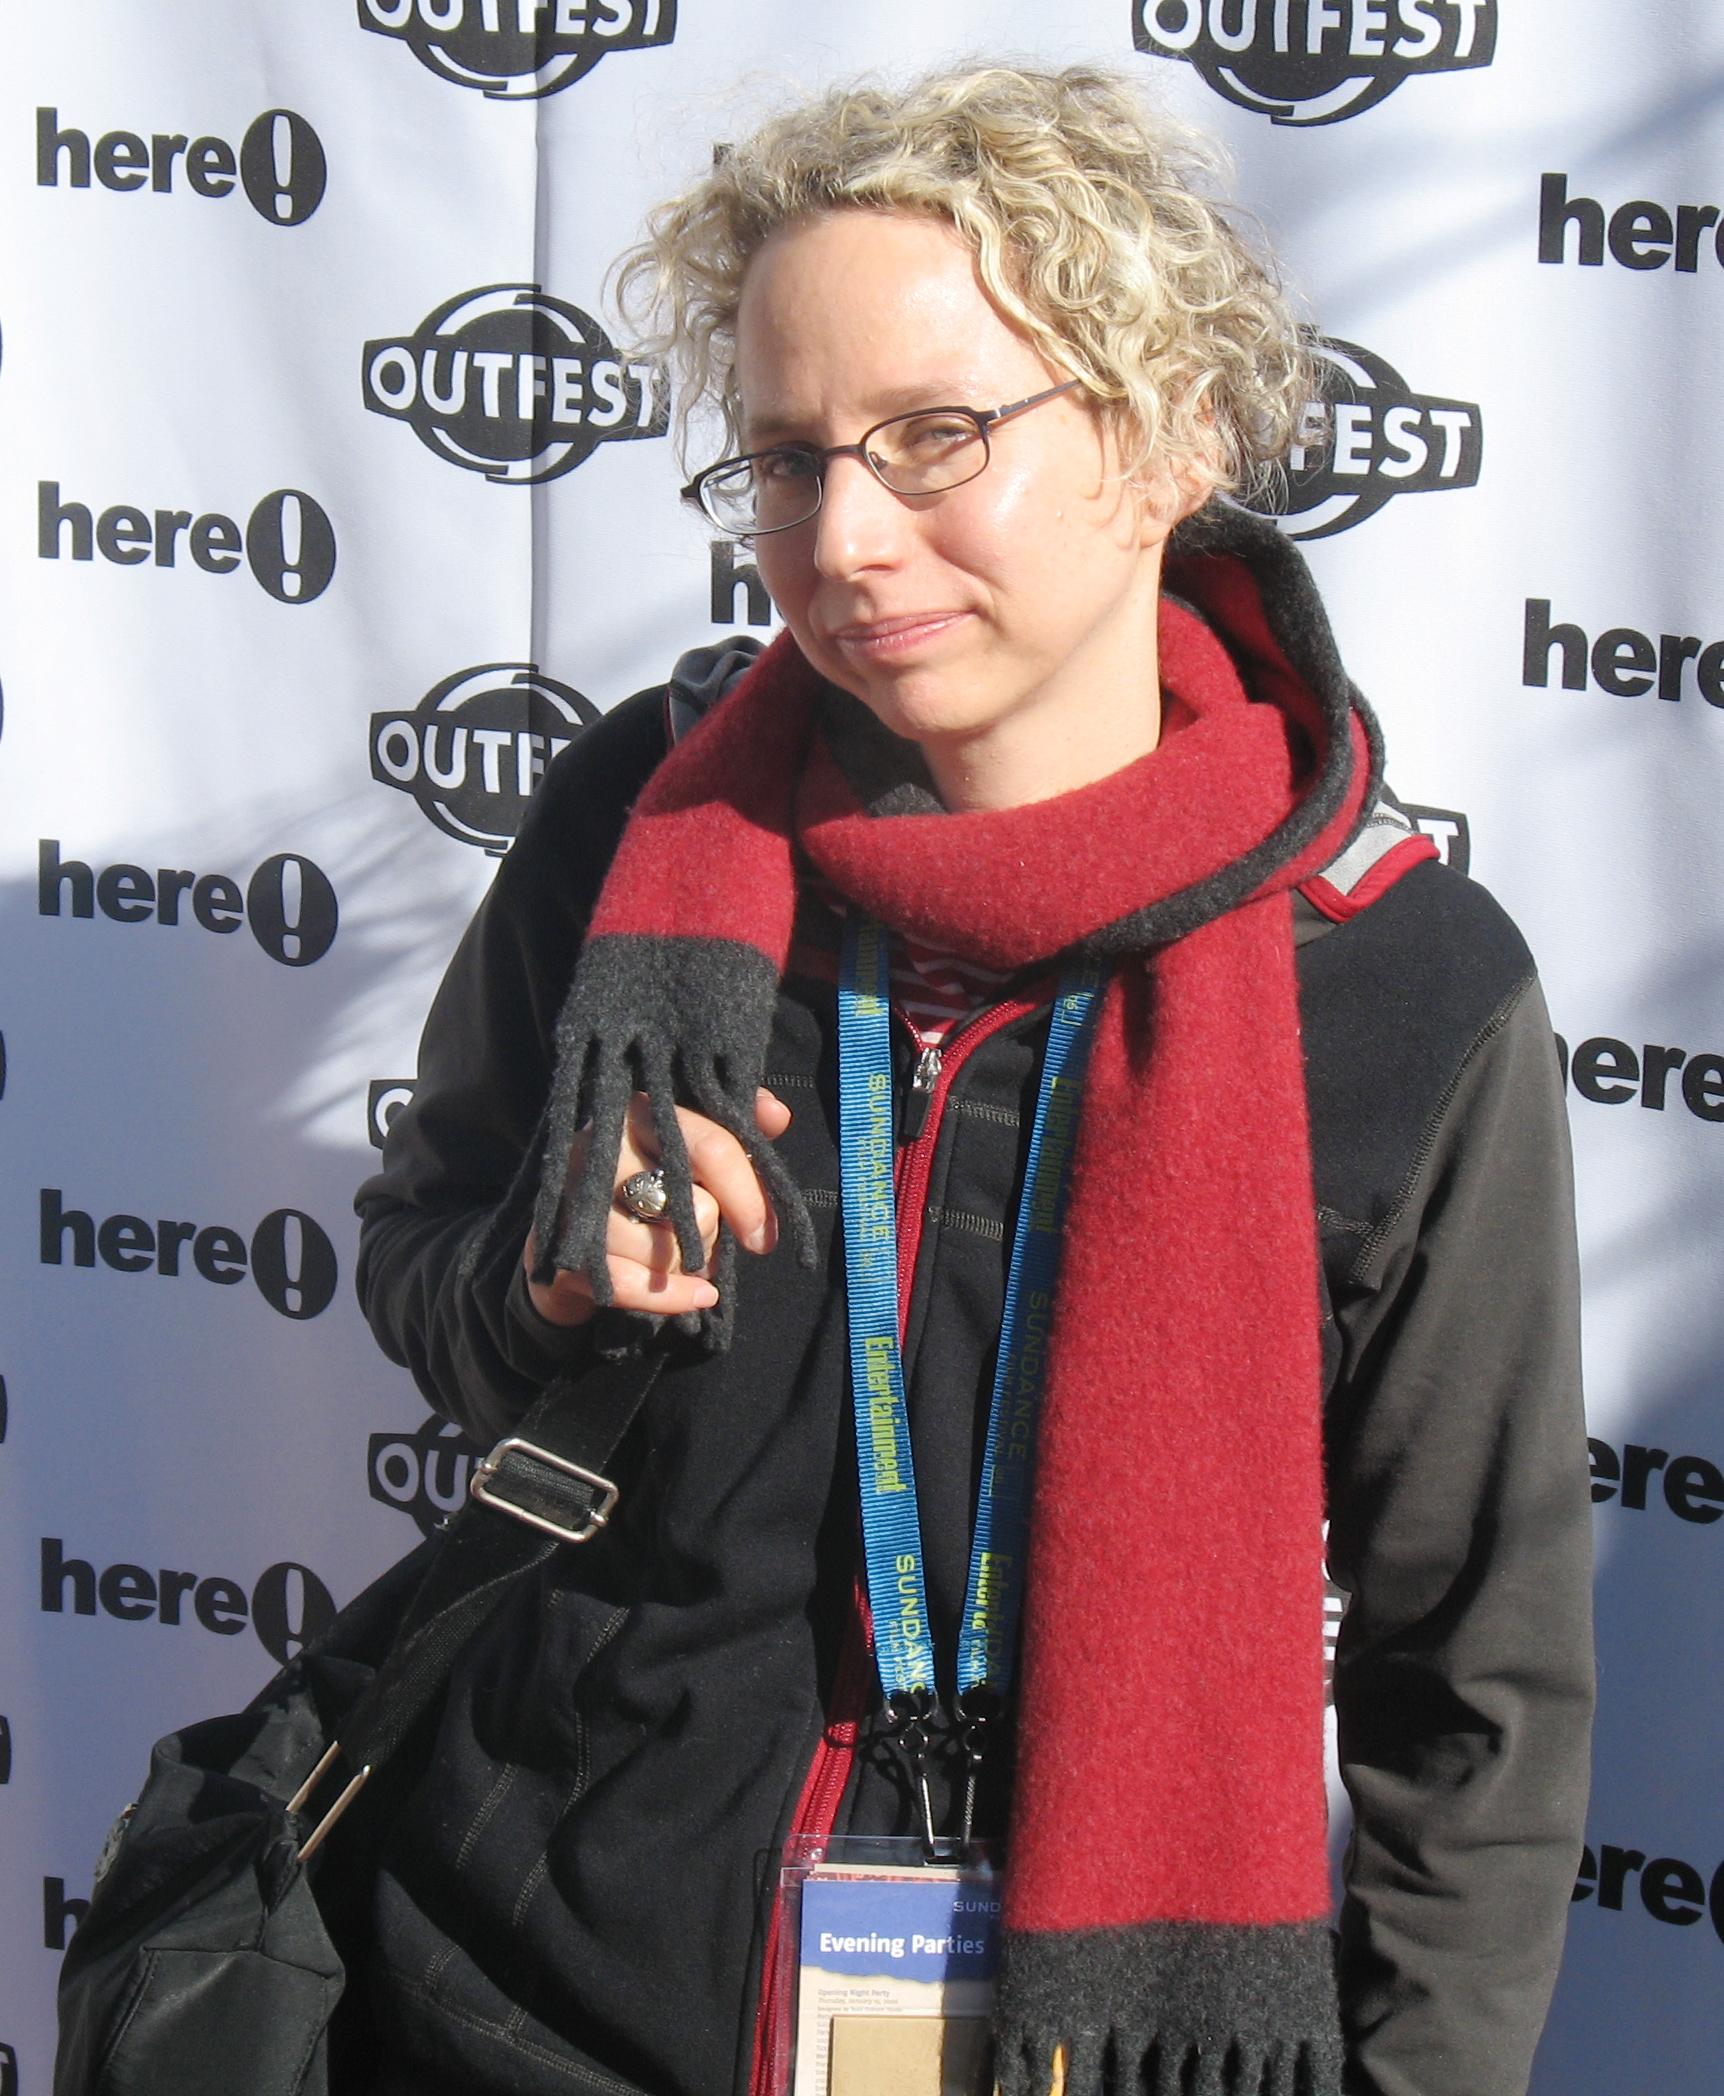 Livingston at the Here! Network/Outfest Queer Brunch during the [[Sundance Film Festival]] in 2006.